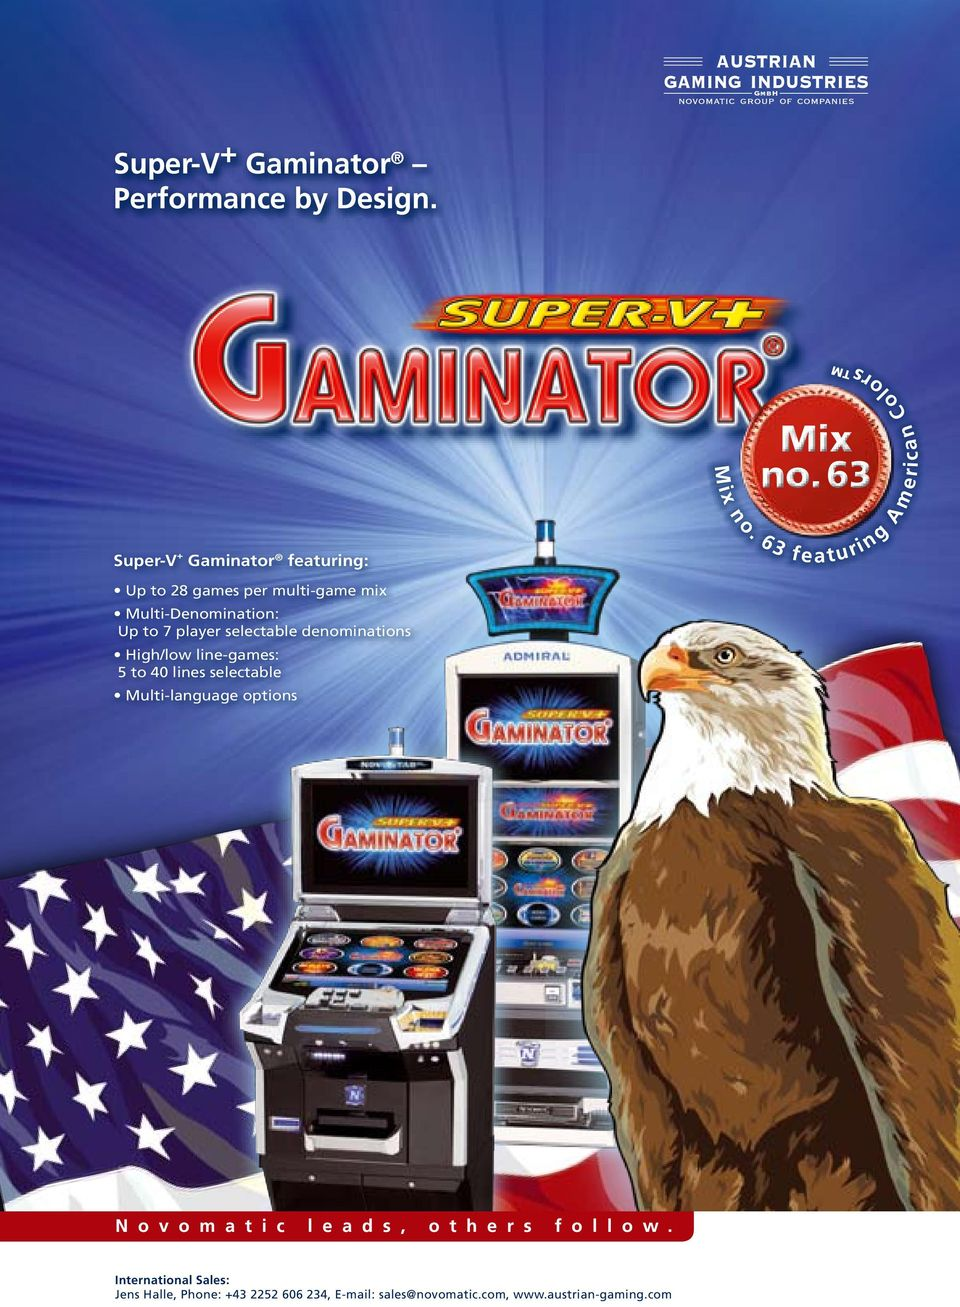 Up to 7 player selectable denominations High/low line-games: 5 to 40 lines selectable